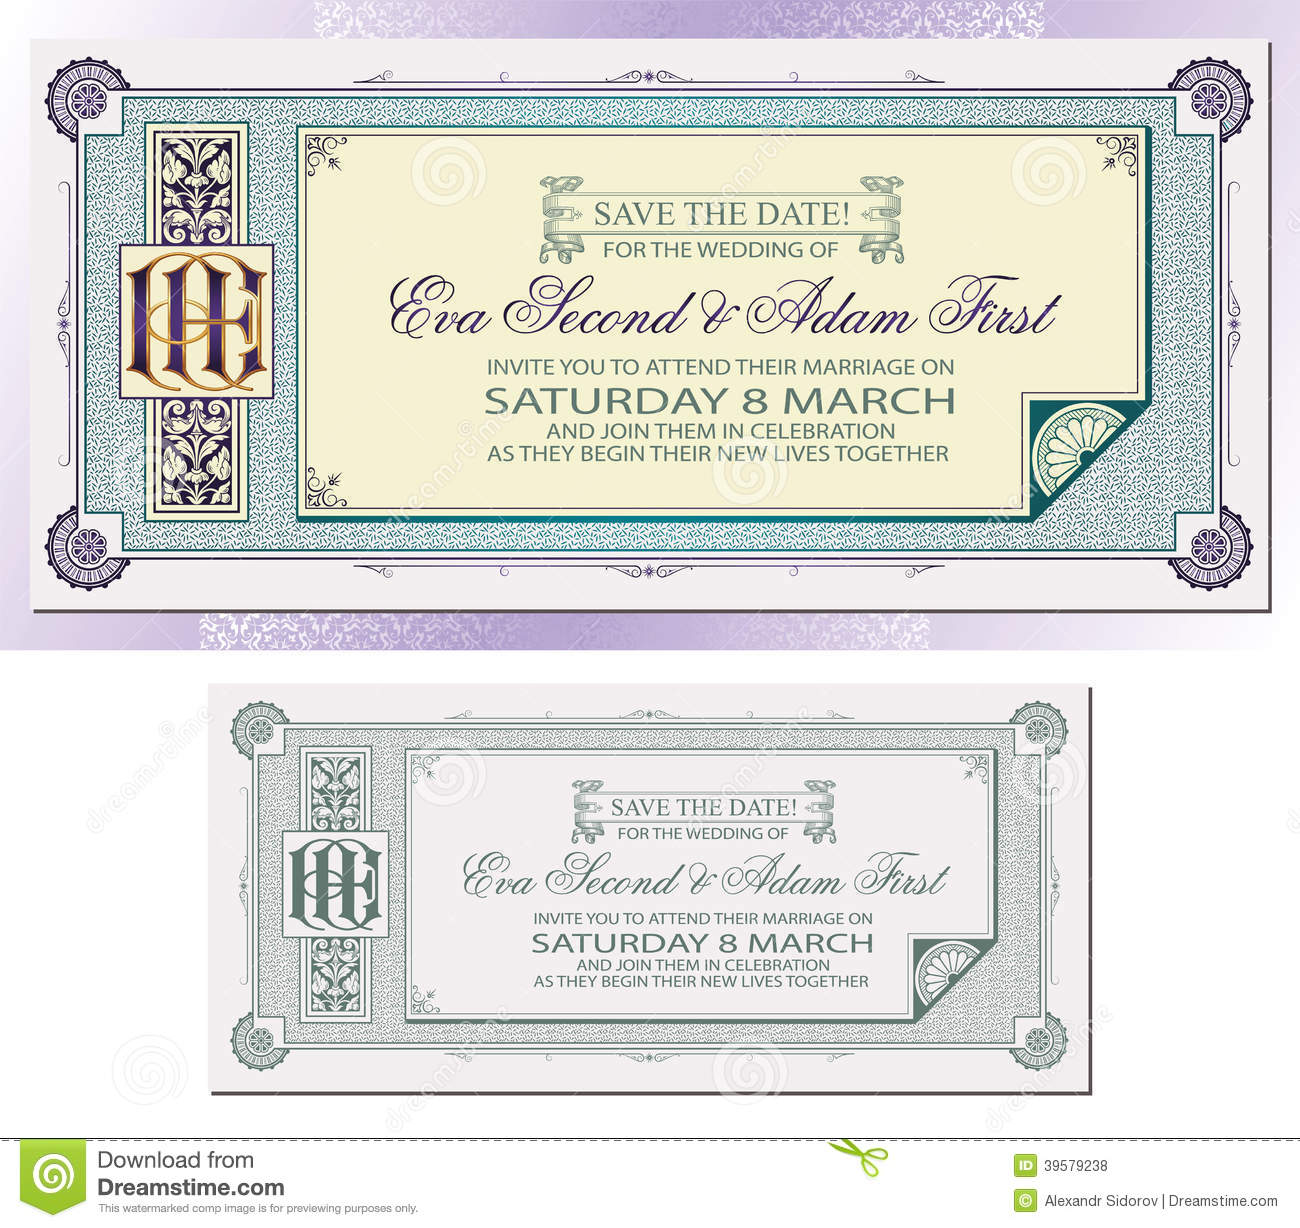 no 10 envelope template - number 10 envelope template number 10 envelope template 5